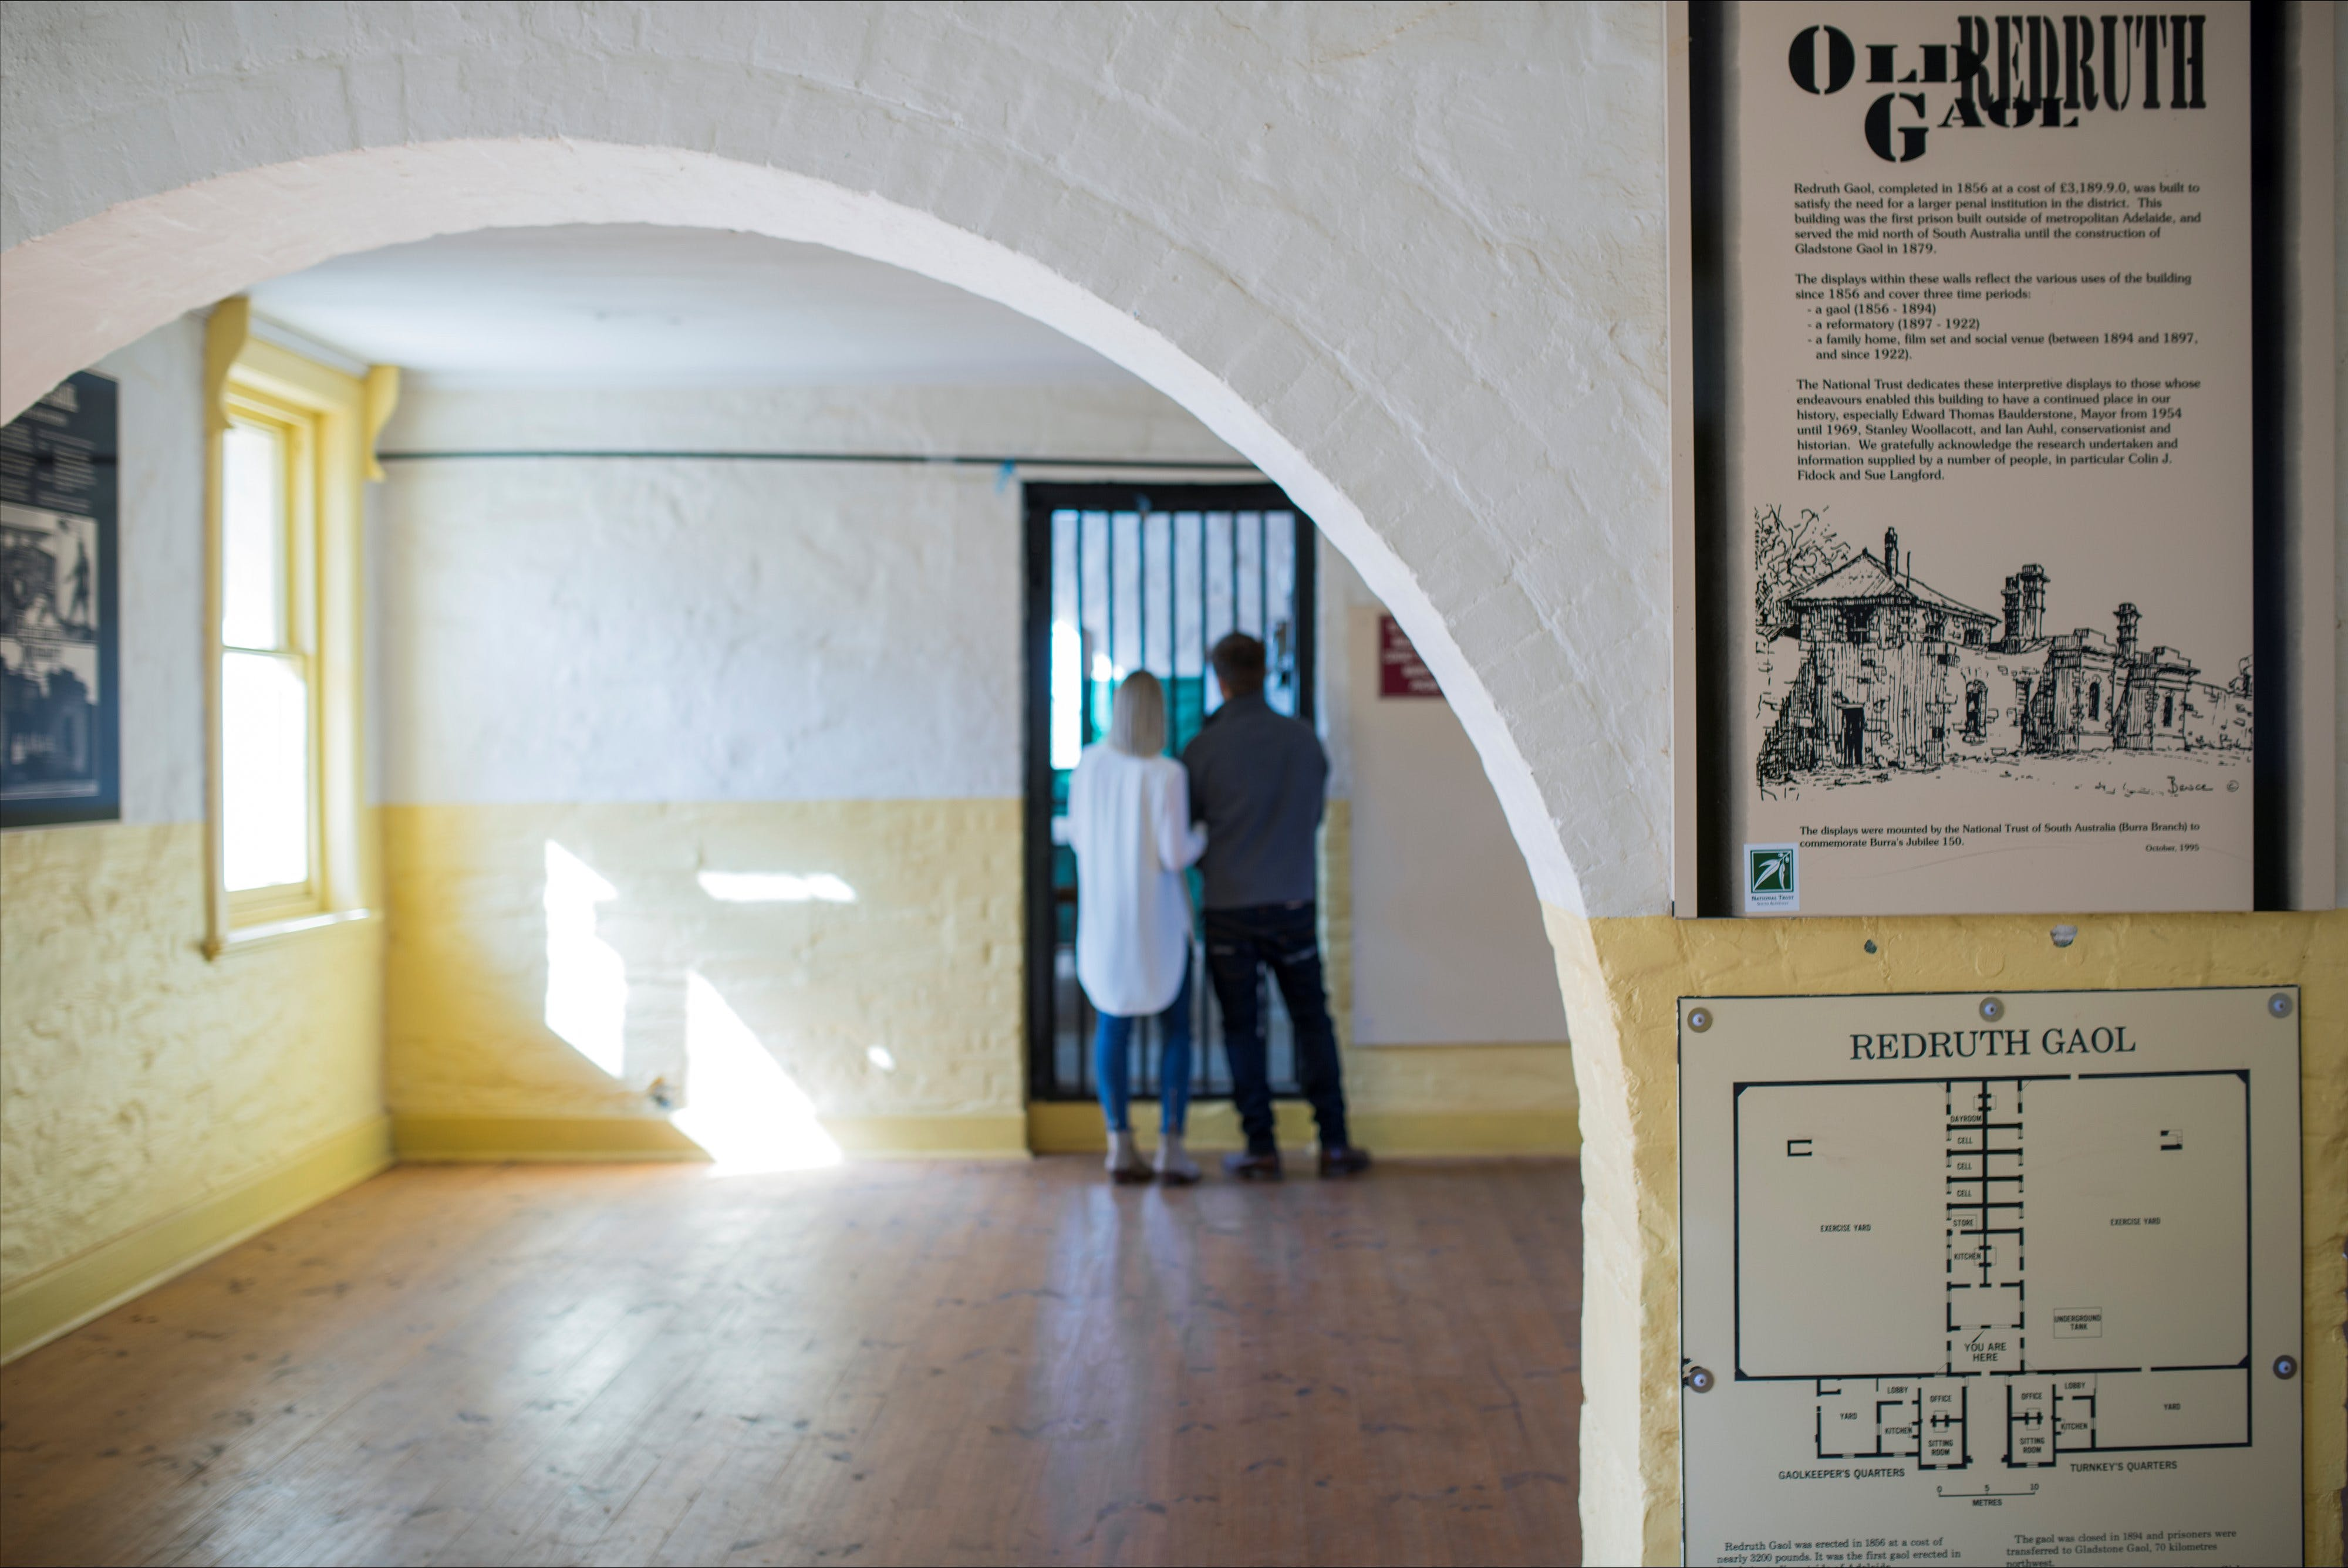 Redruth Gaol - ACT Tourism